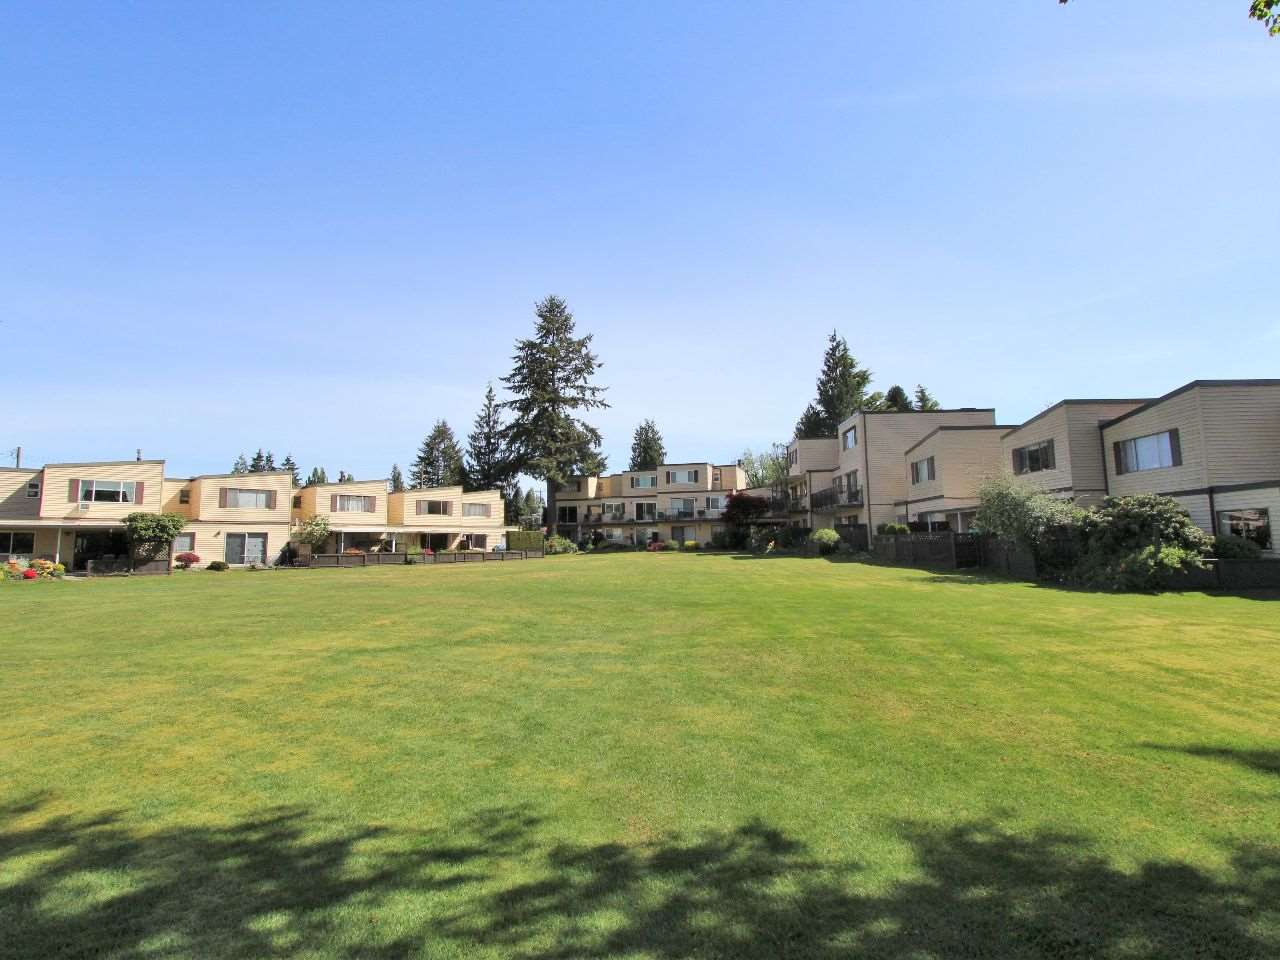 Photo 2: 606 2445 WARE Street in Abbotsford: Central Abbotsford Townhouse for sale : MLS® # R2059494